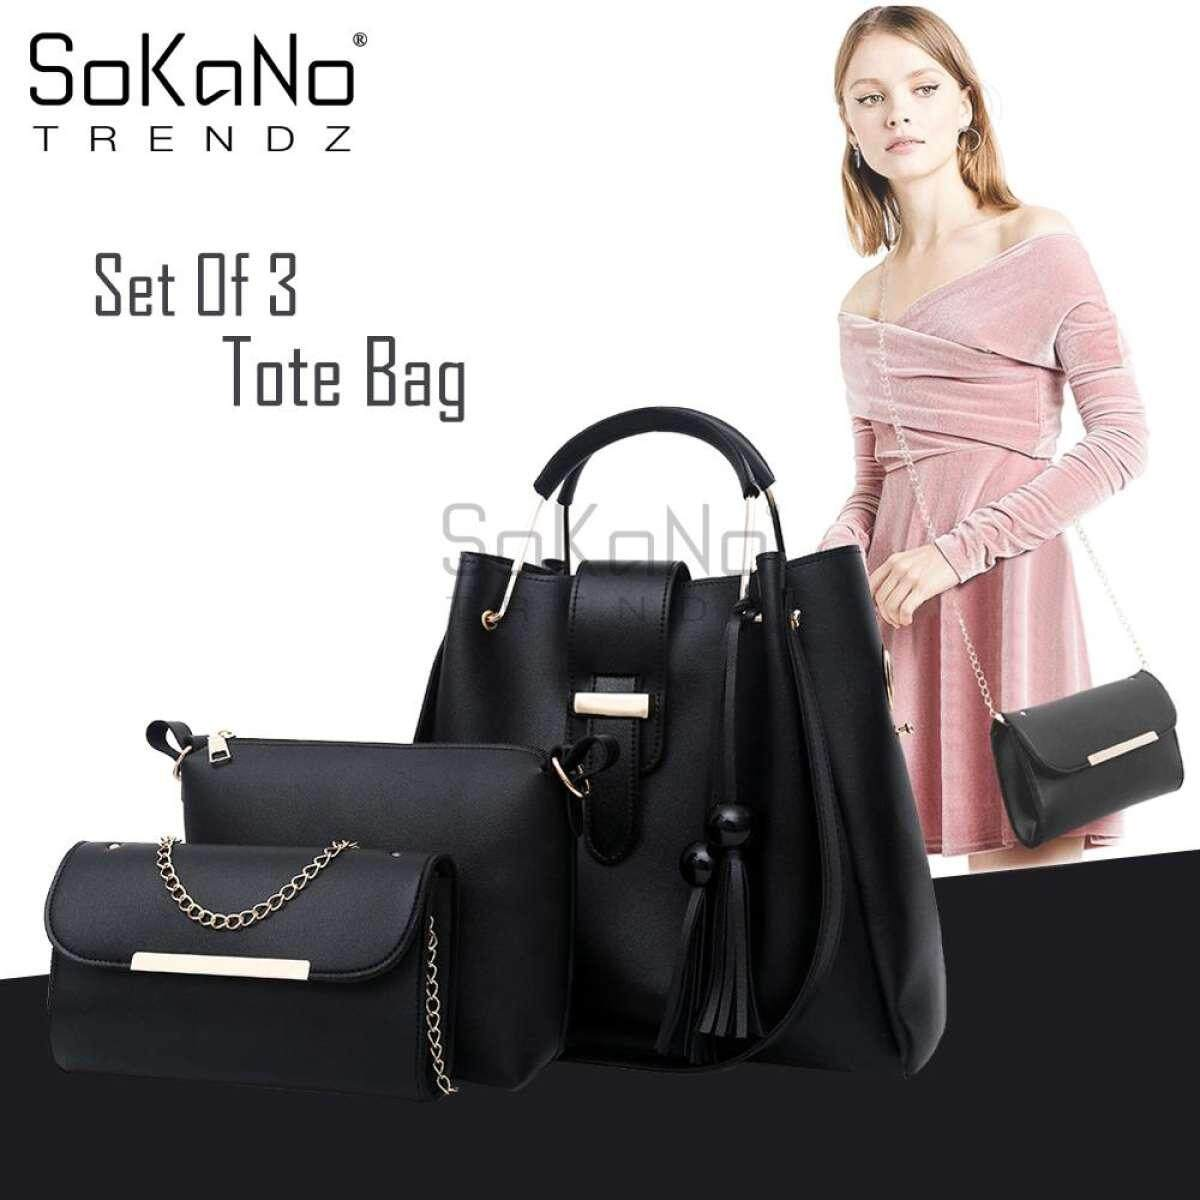 SoKaNo Trendz SKN841 Large Capacity European Designed Luxury Tote Bag (Set Of 3) Handbeg Wanita- Black